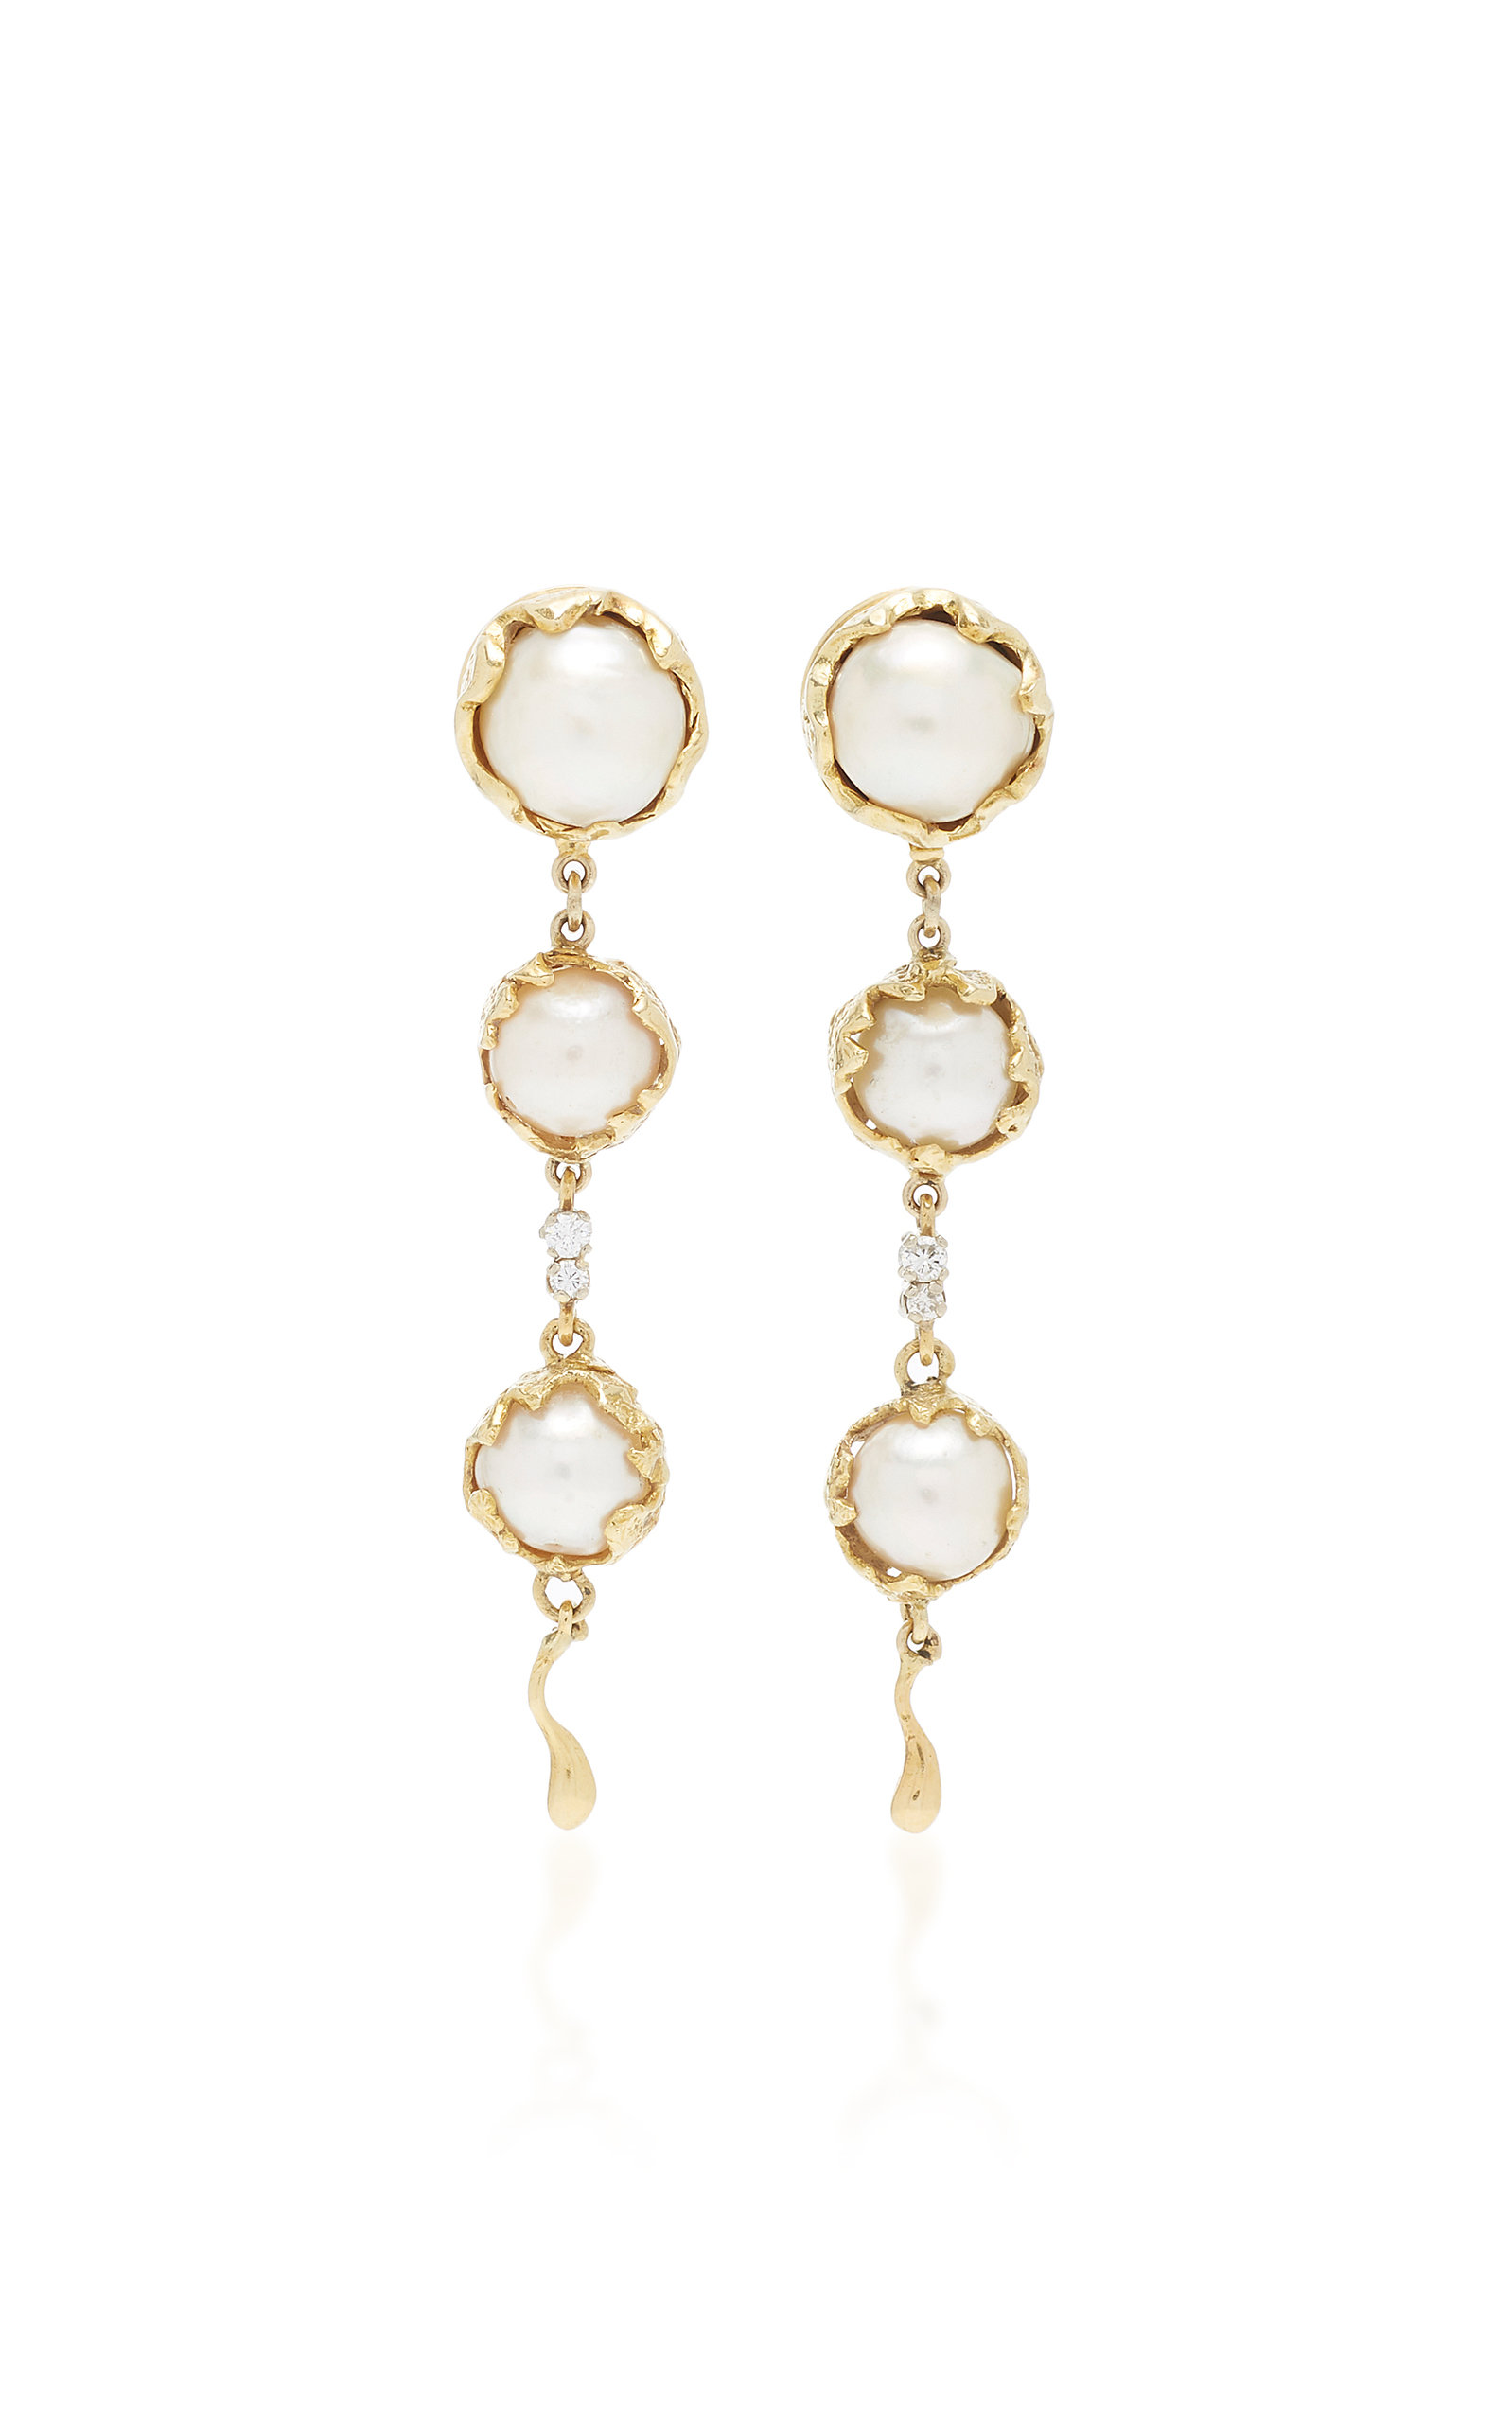 MAHNAZ COLLECTION LIMITED EDITION 18K GOLD CONVERTIBLE DAY/NIGHT EARRINGS WITH PEARLS AND DIAMONDS BY CHARLES DE TEMPL